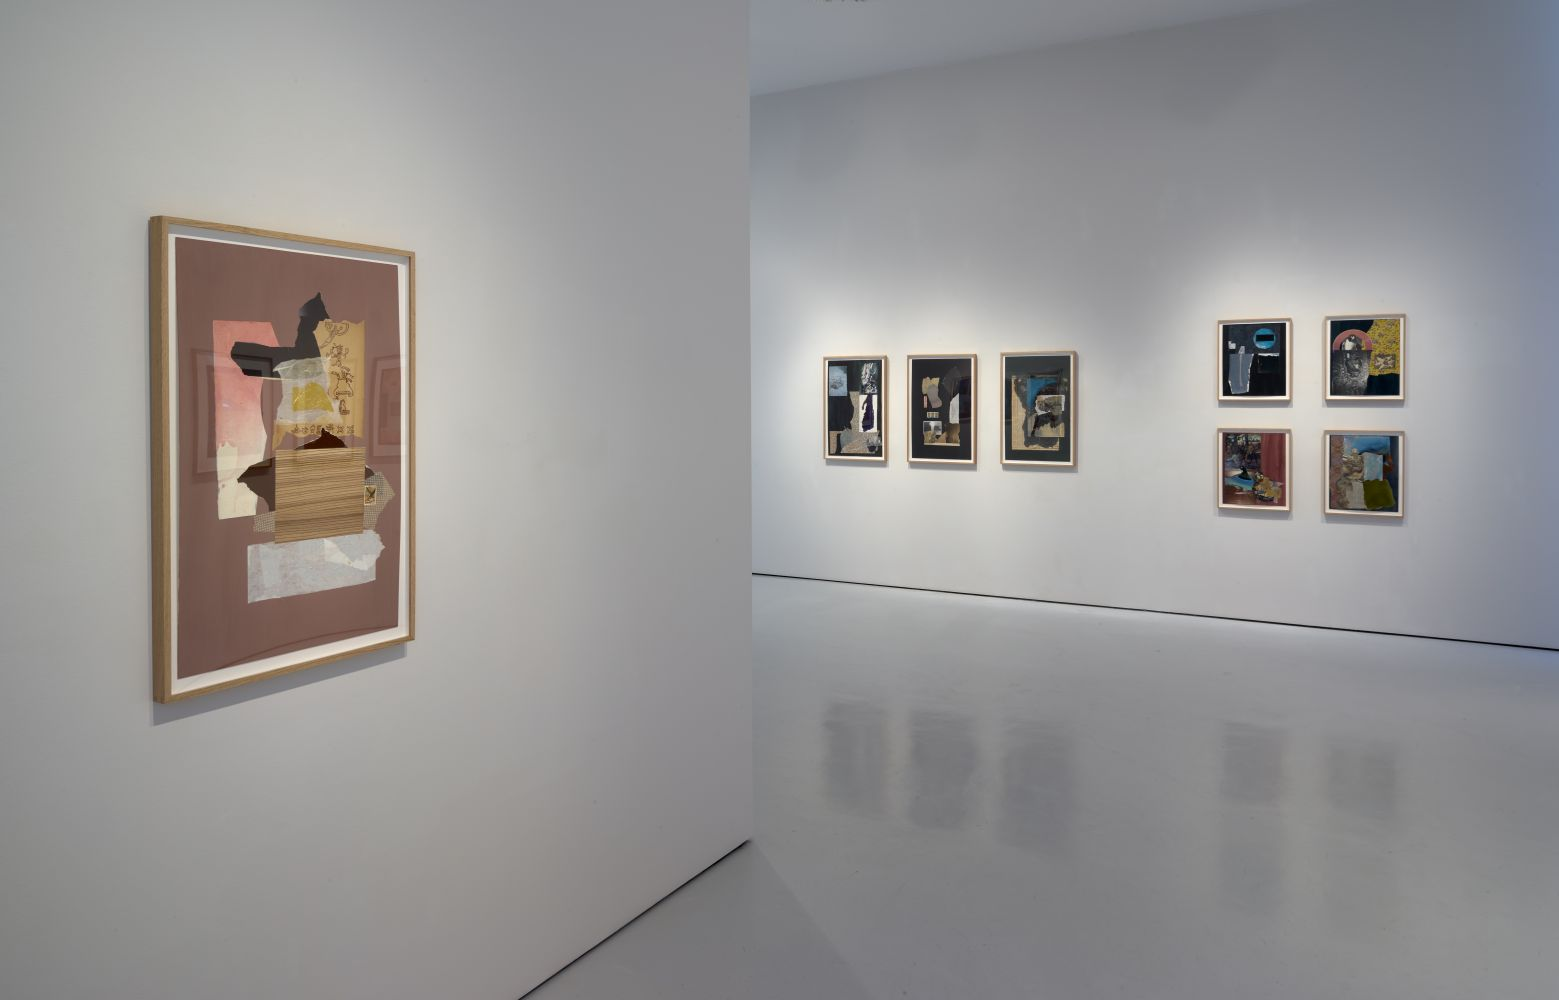 Installation view, Dorothy Hood: Collage, McClain Gallery, Houston, Texas, June 2020